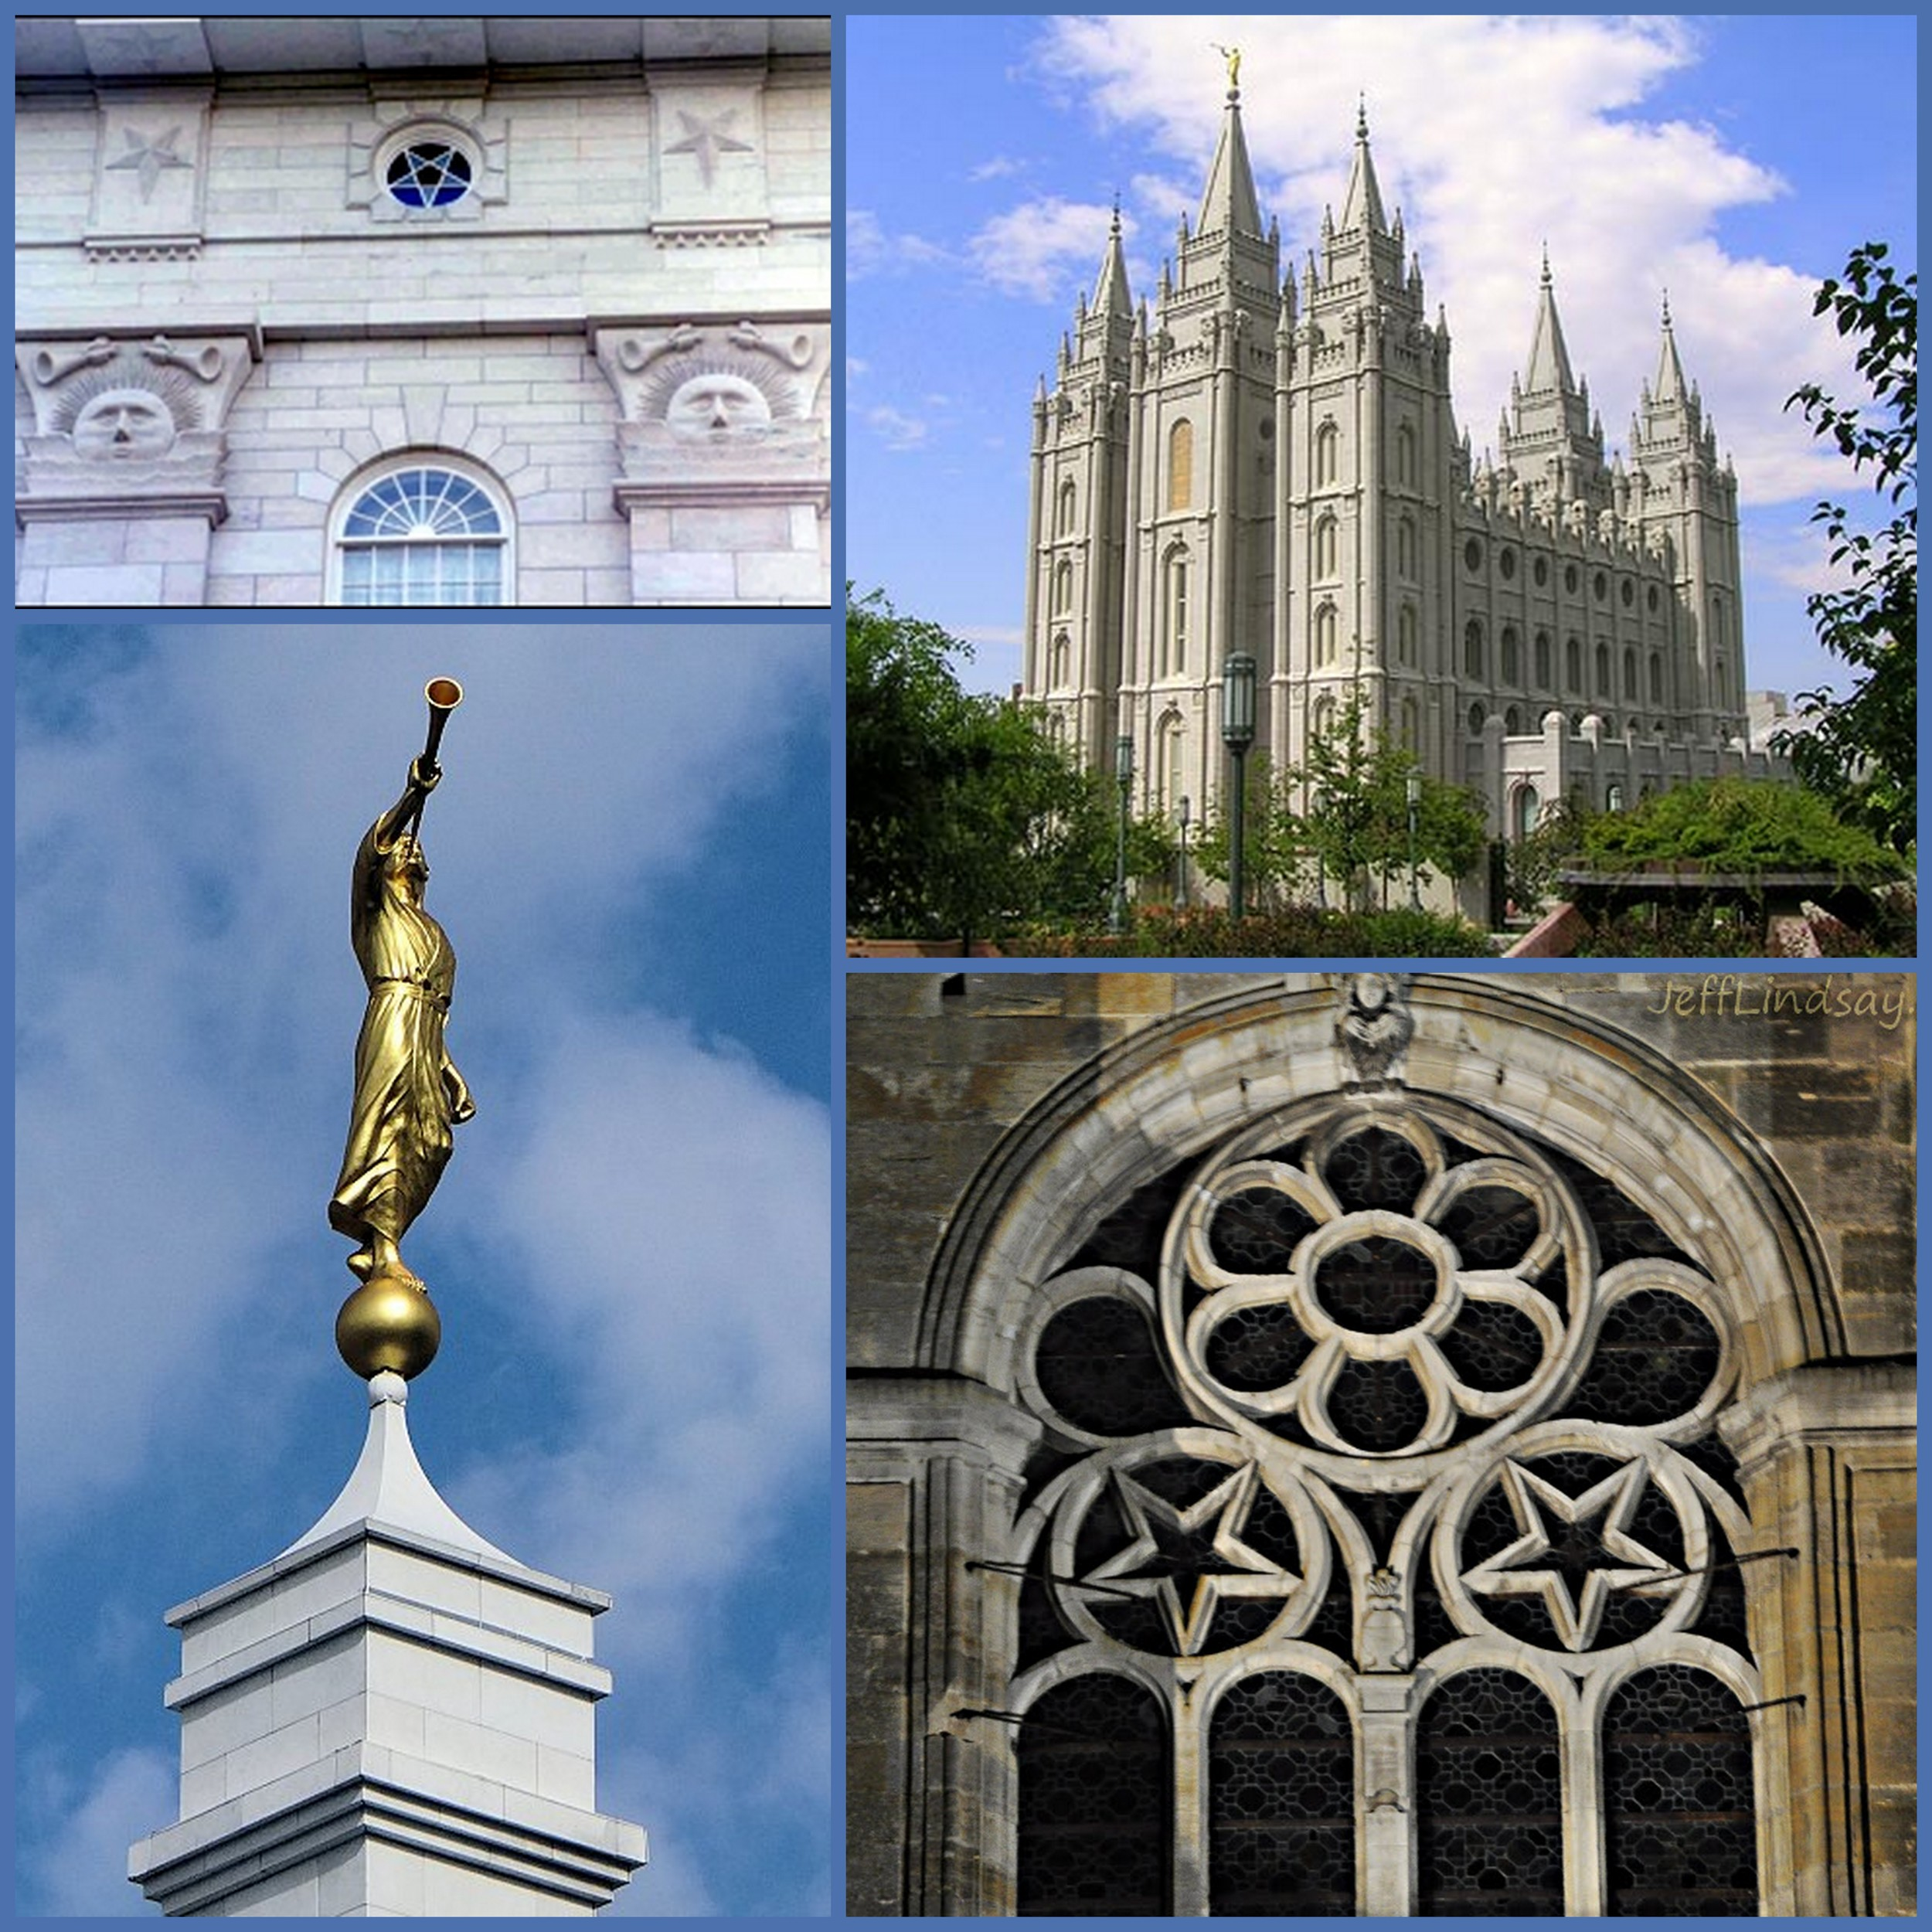 """The images are of Mormon temples and temple decorations. Note the eerie appearance of the temples and the excessive use of pentagrams worked into the decor. The """"angel of light,"""" Moroni, blows his trump atop each temple."""